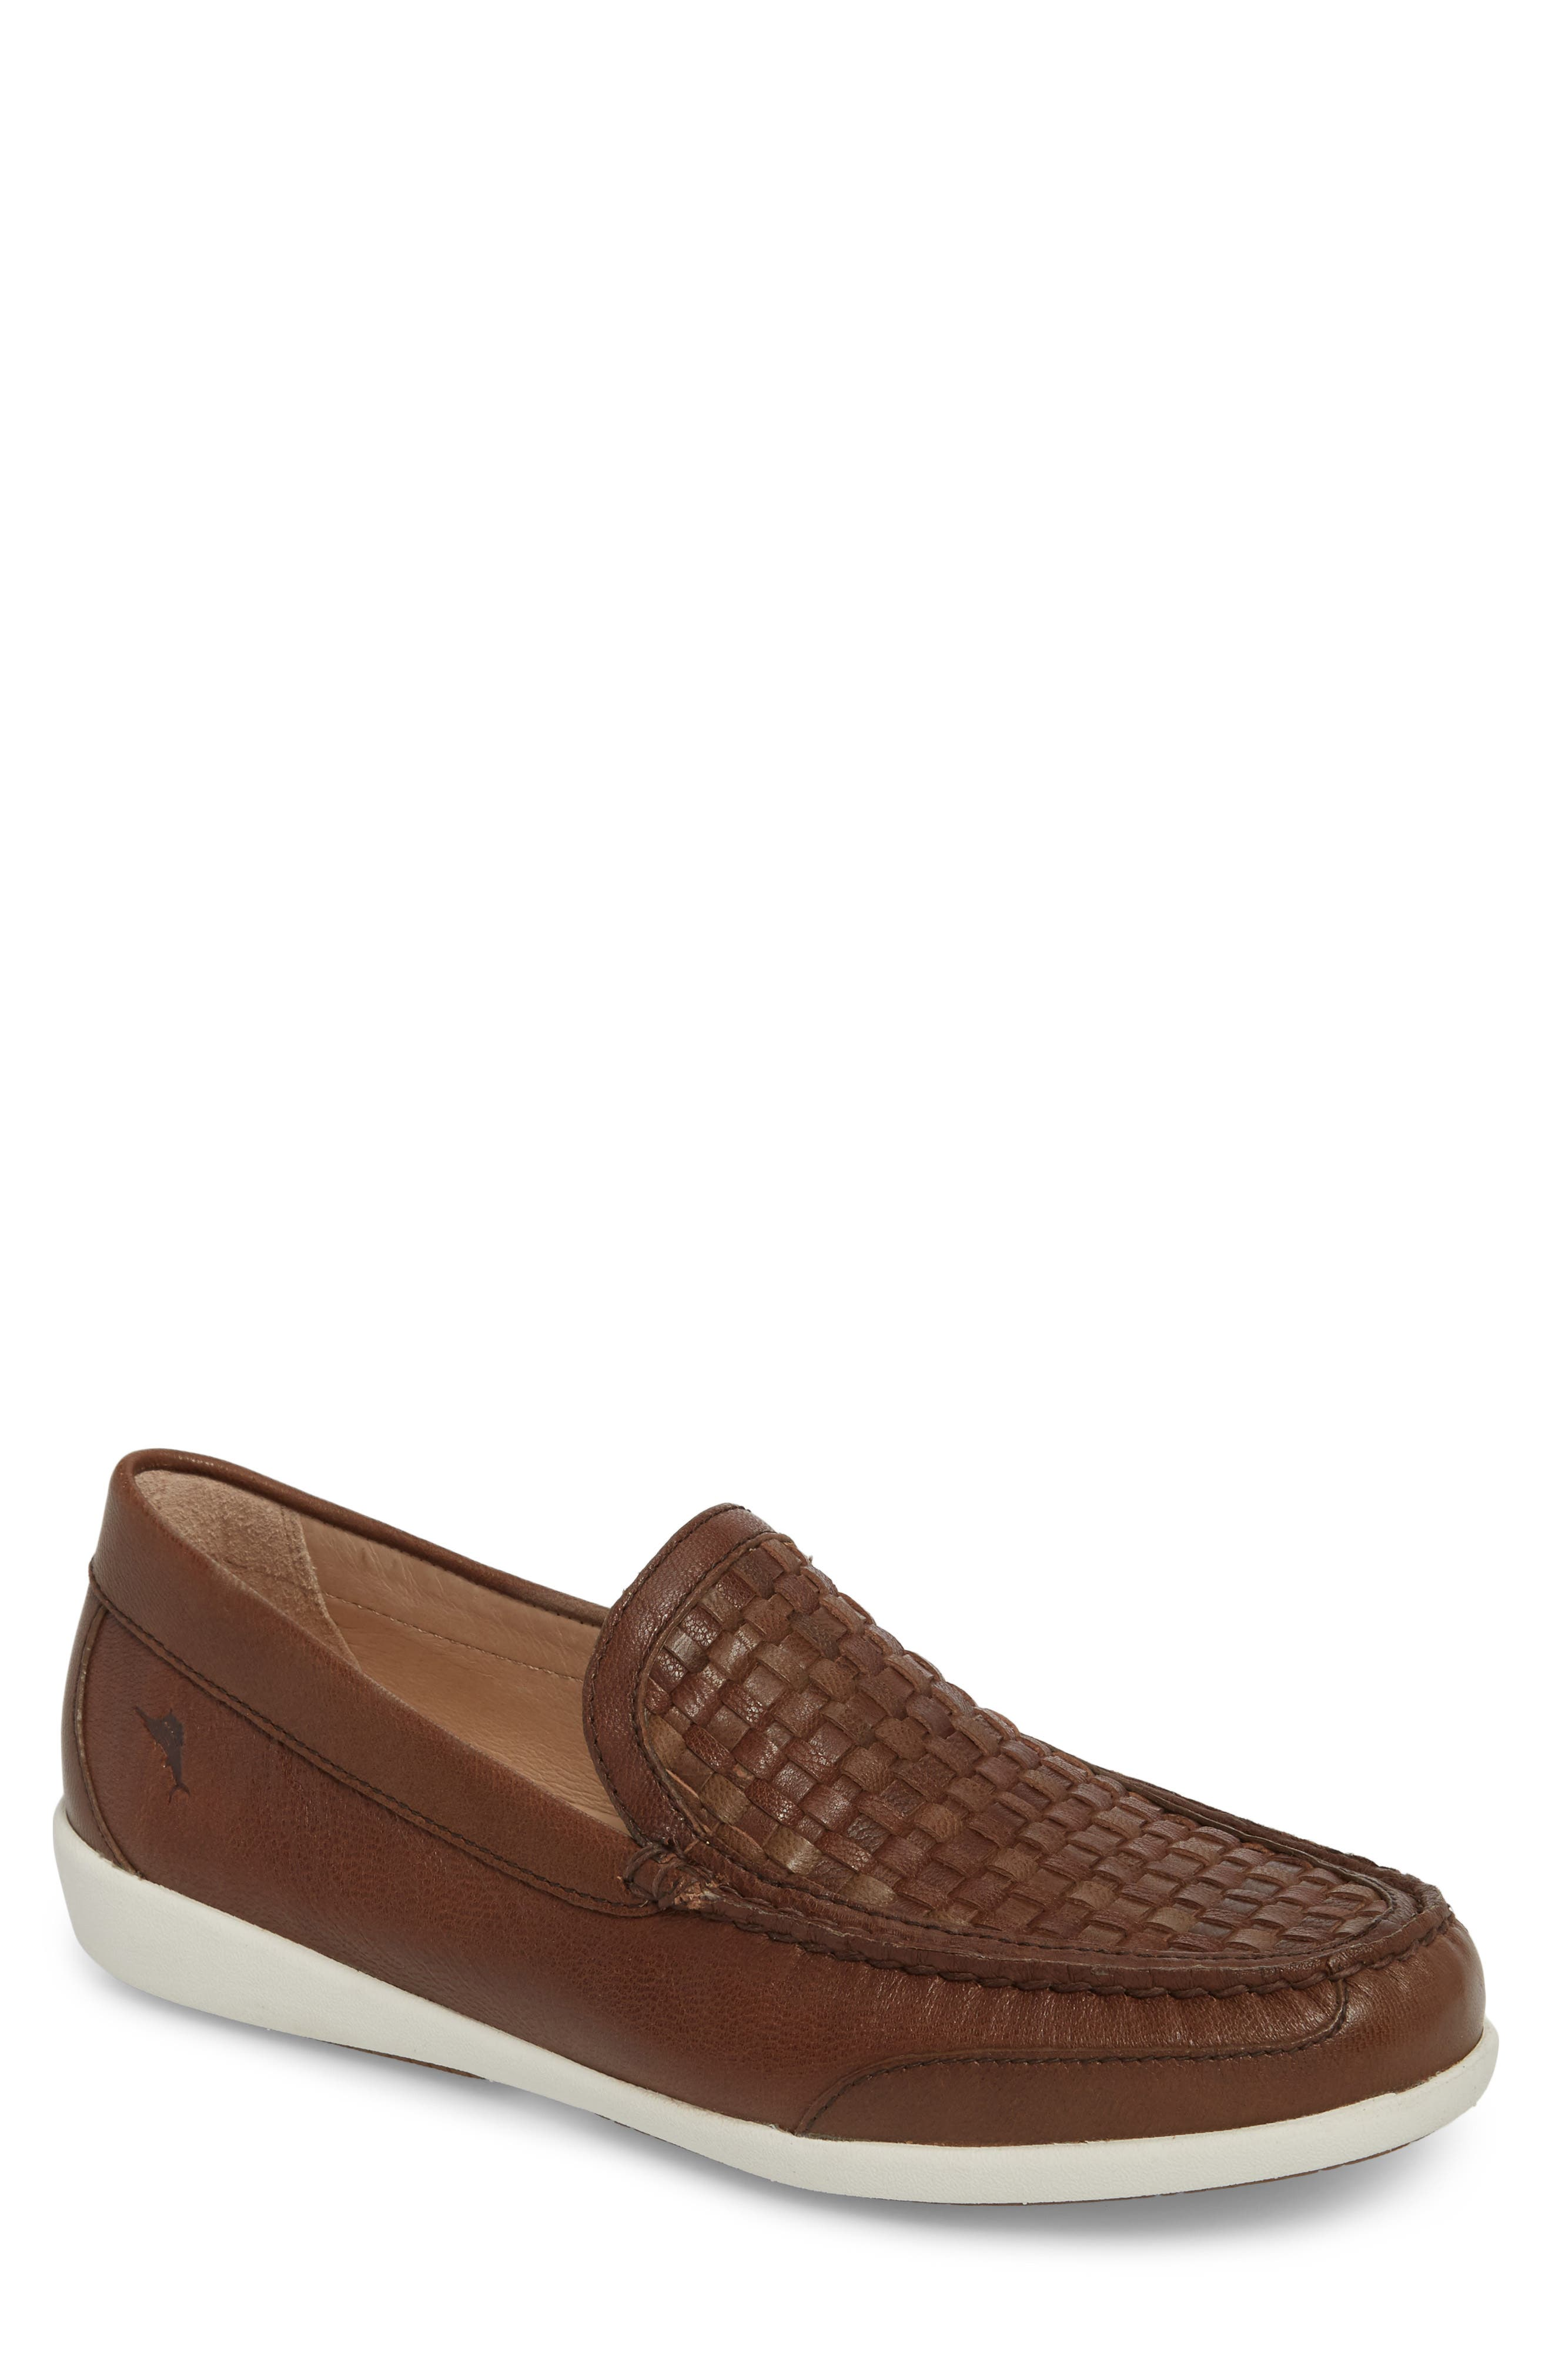 Taormina Woven Loafer,                             Main thumbnail 1, color,                             DARK BROWN LEATHER